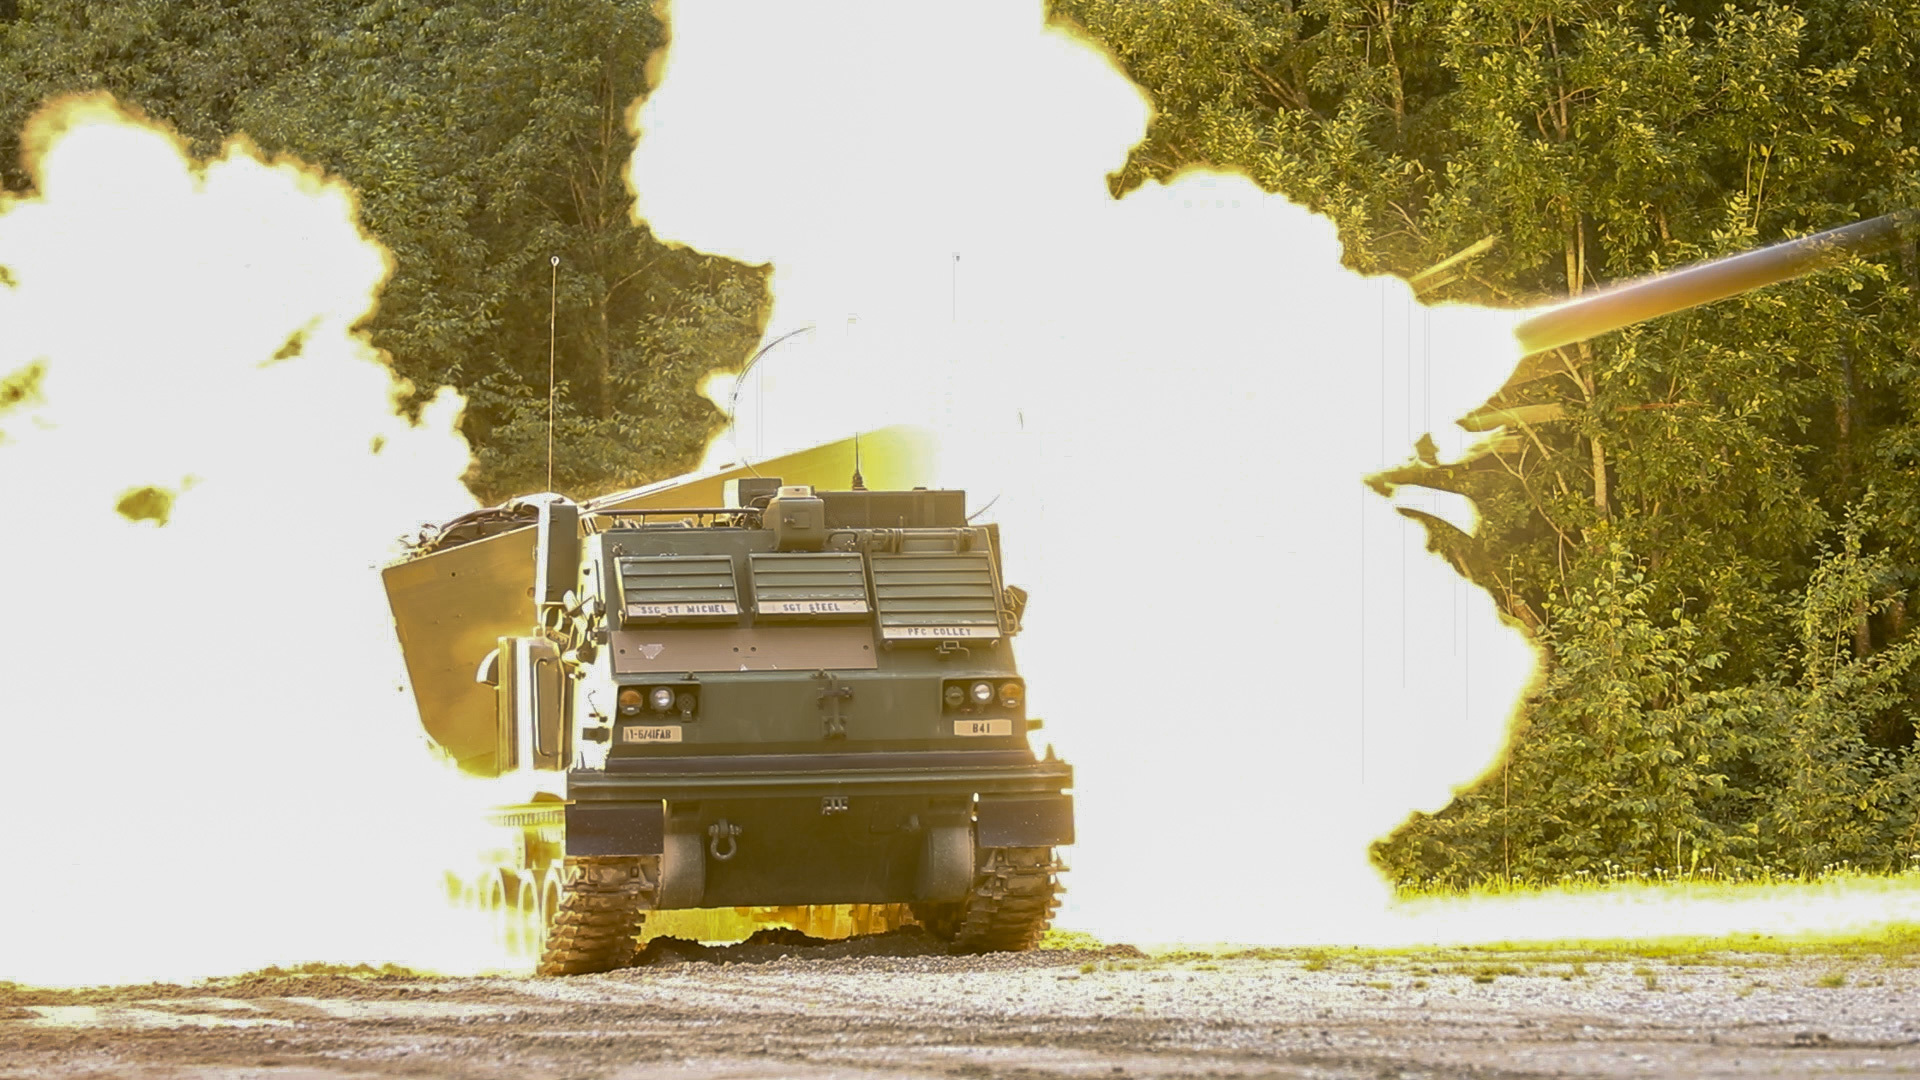 A U.S. Army Multiple Launch Rocket System fires a rocket during a live fire exercise with Estonian defense forces in Tapa, Estonia, Sept. 5, 2020. (Spc. Ryan Barnes/Army)